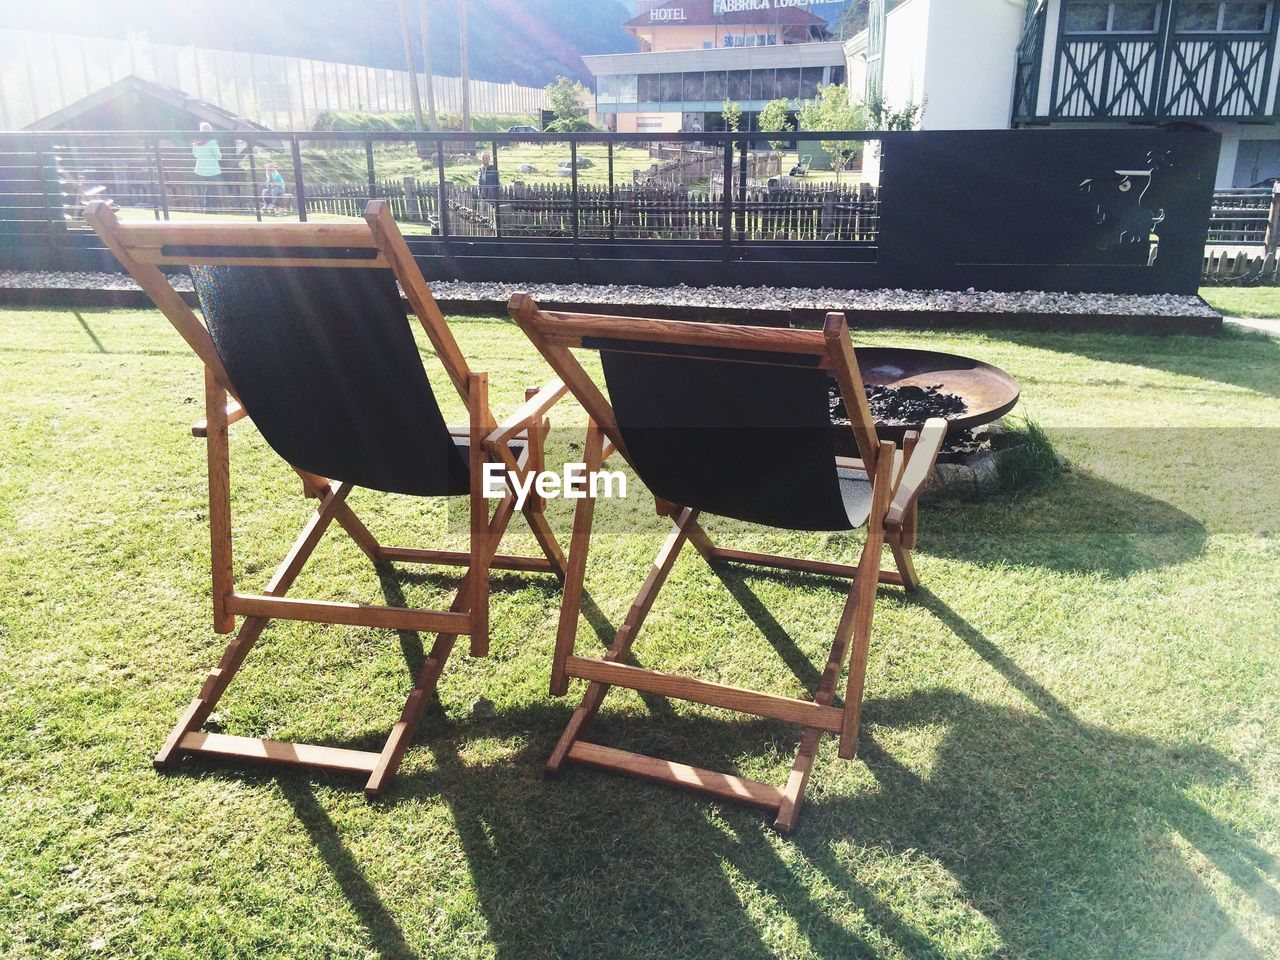 chair, table, day, sunlight, no people, grass, architecture, built structure, shadow, outdoors, building exterior, nature, seat, tree